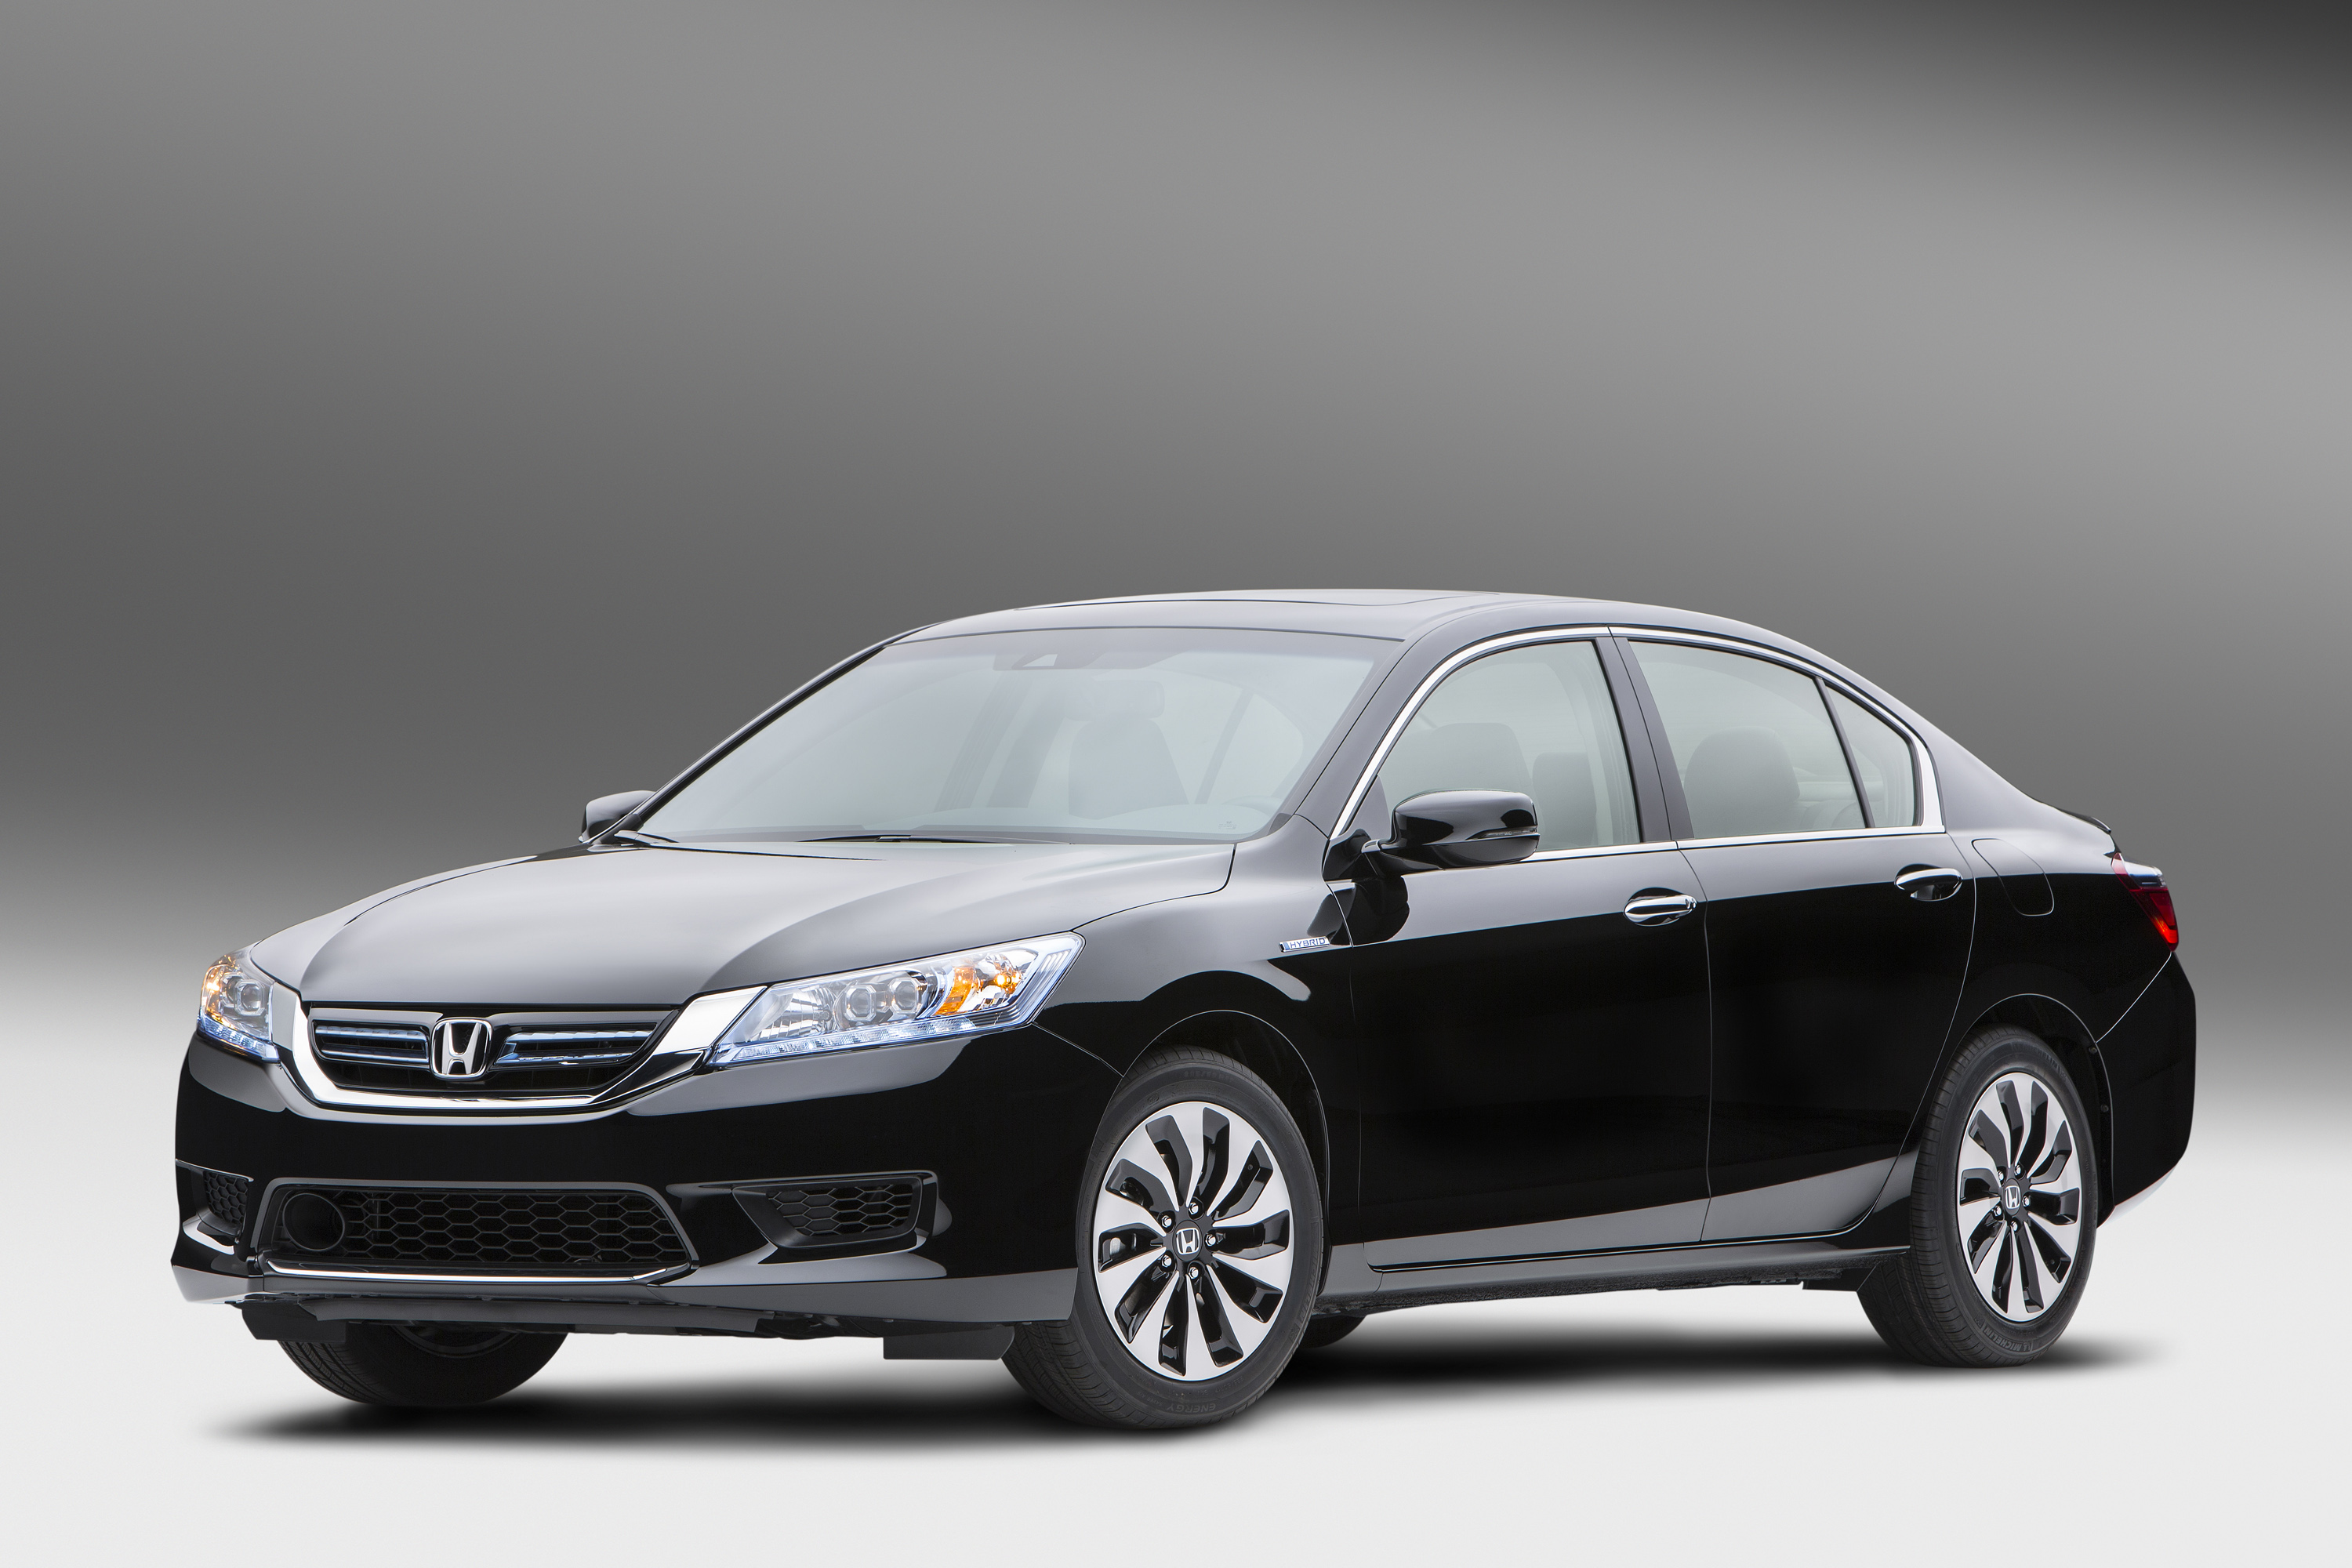 awesome special the view is with accord features loaded honda